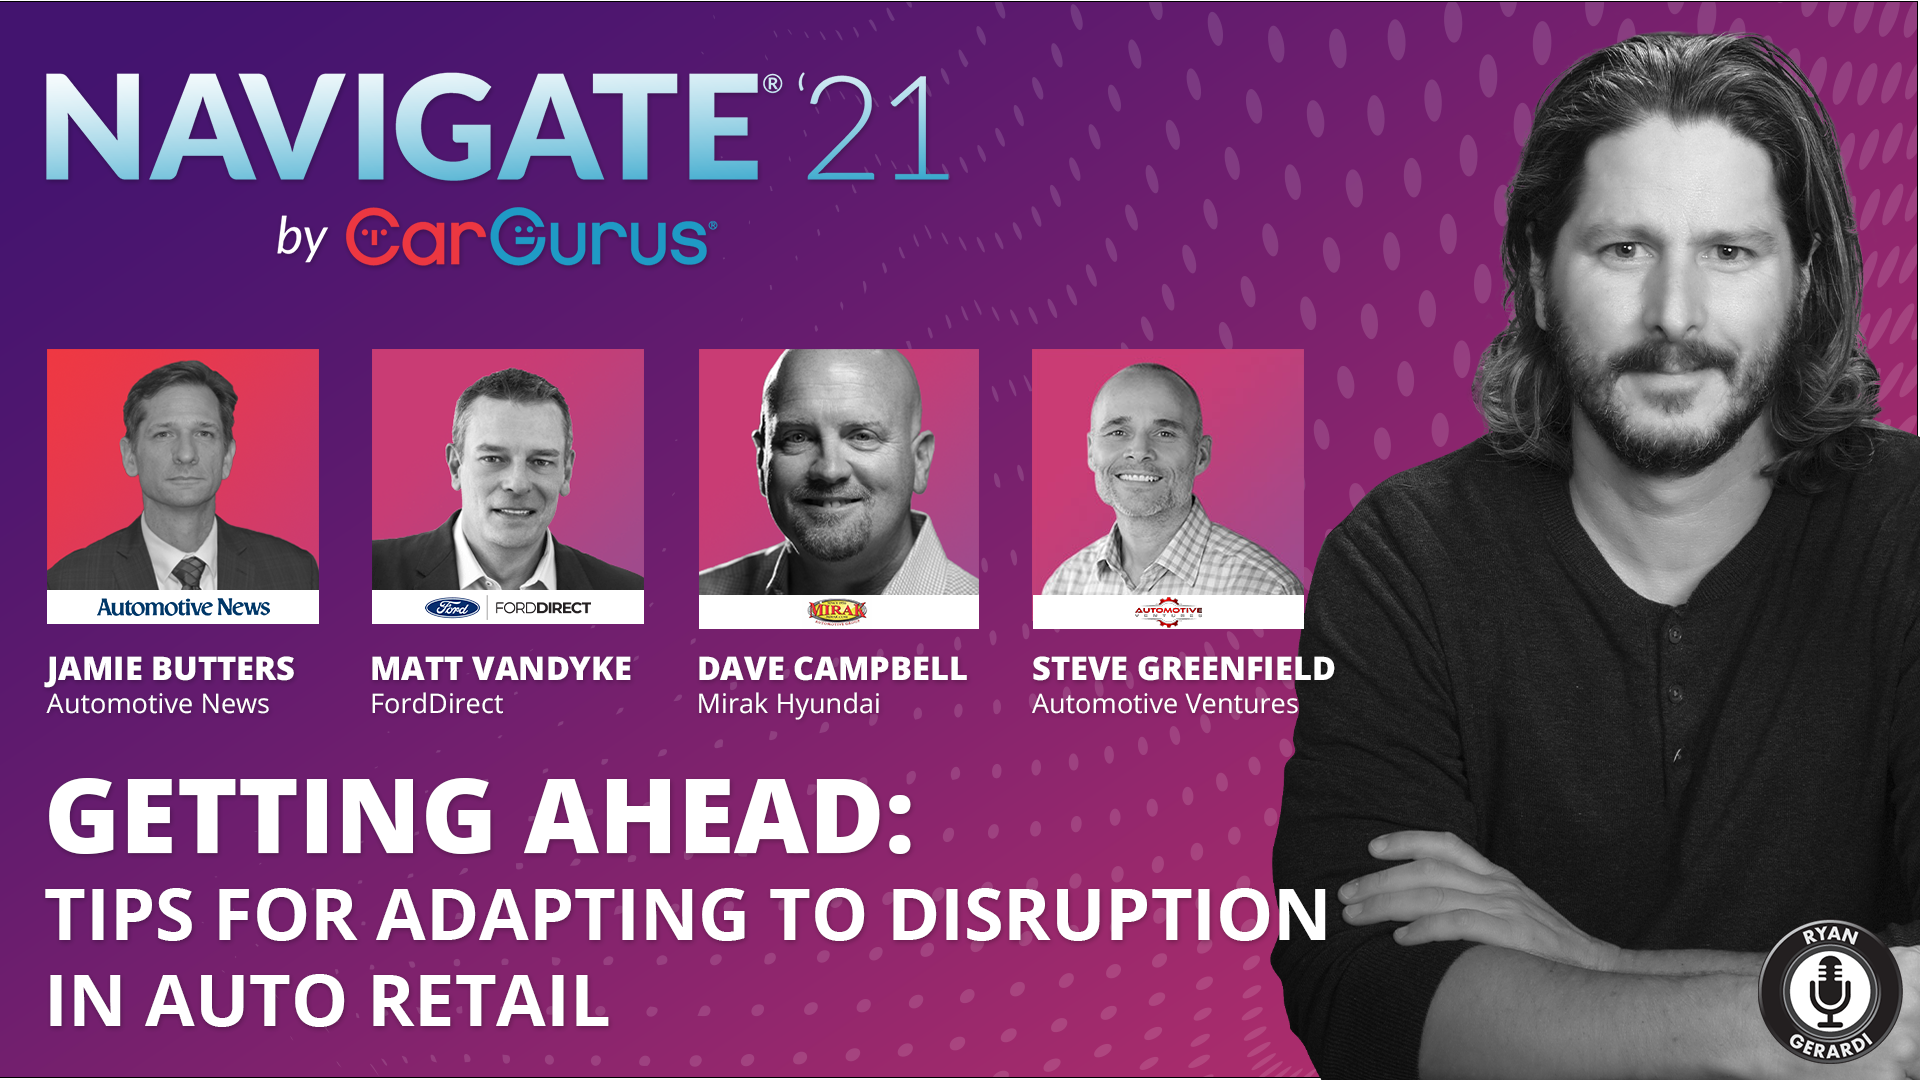 Getting Ahead: Tips for Adapting to Disruption in Auto Retail – a CarGurus Panel Discussion